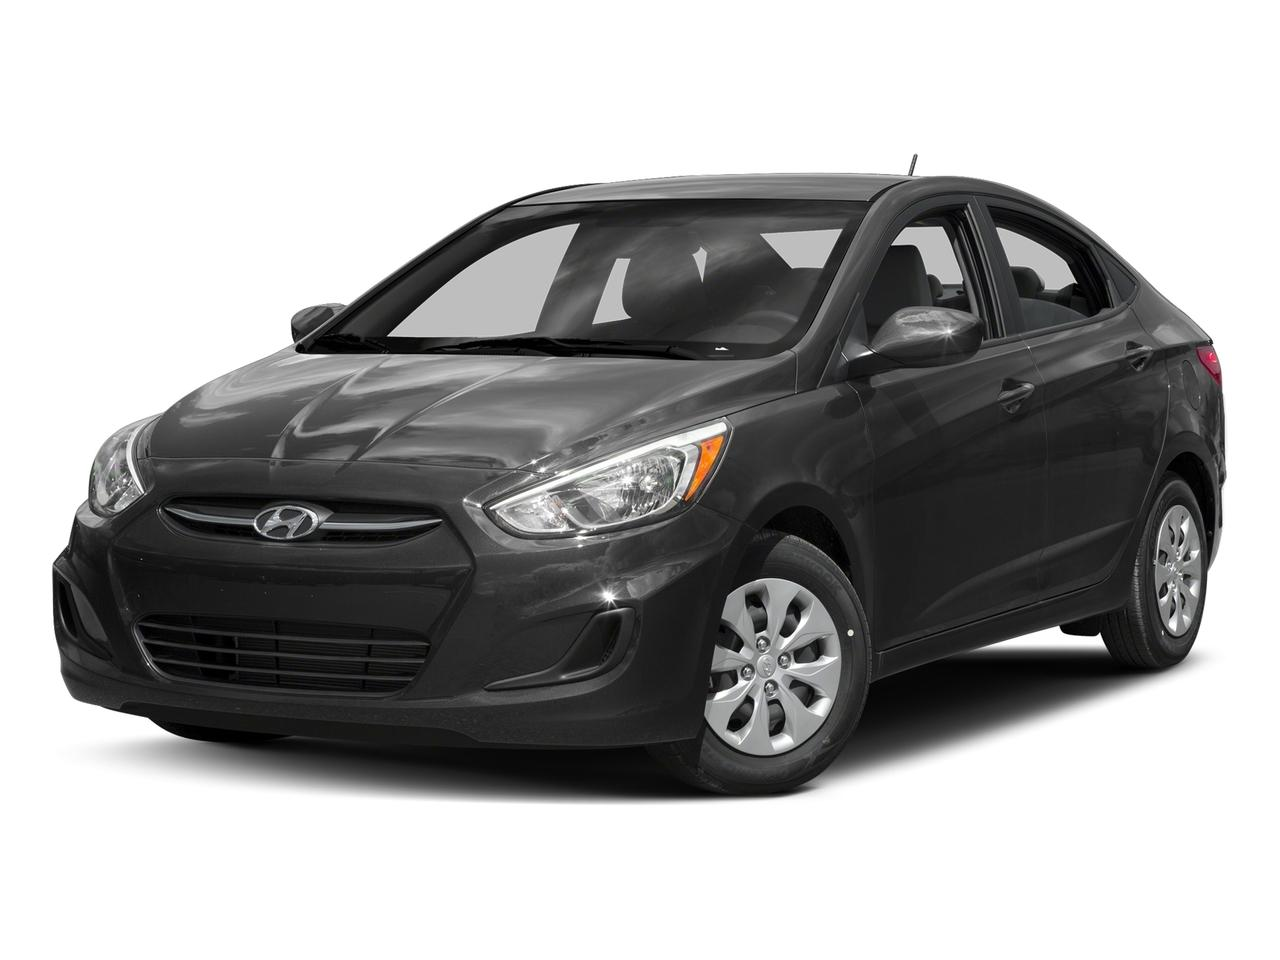 2017 Hyundai Accent Vehicle Photo in Spokane, WA 99207